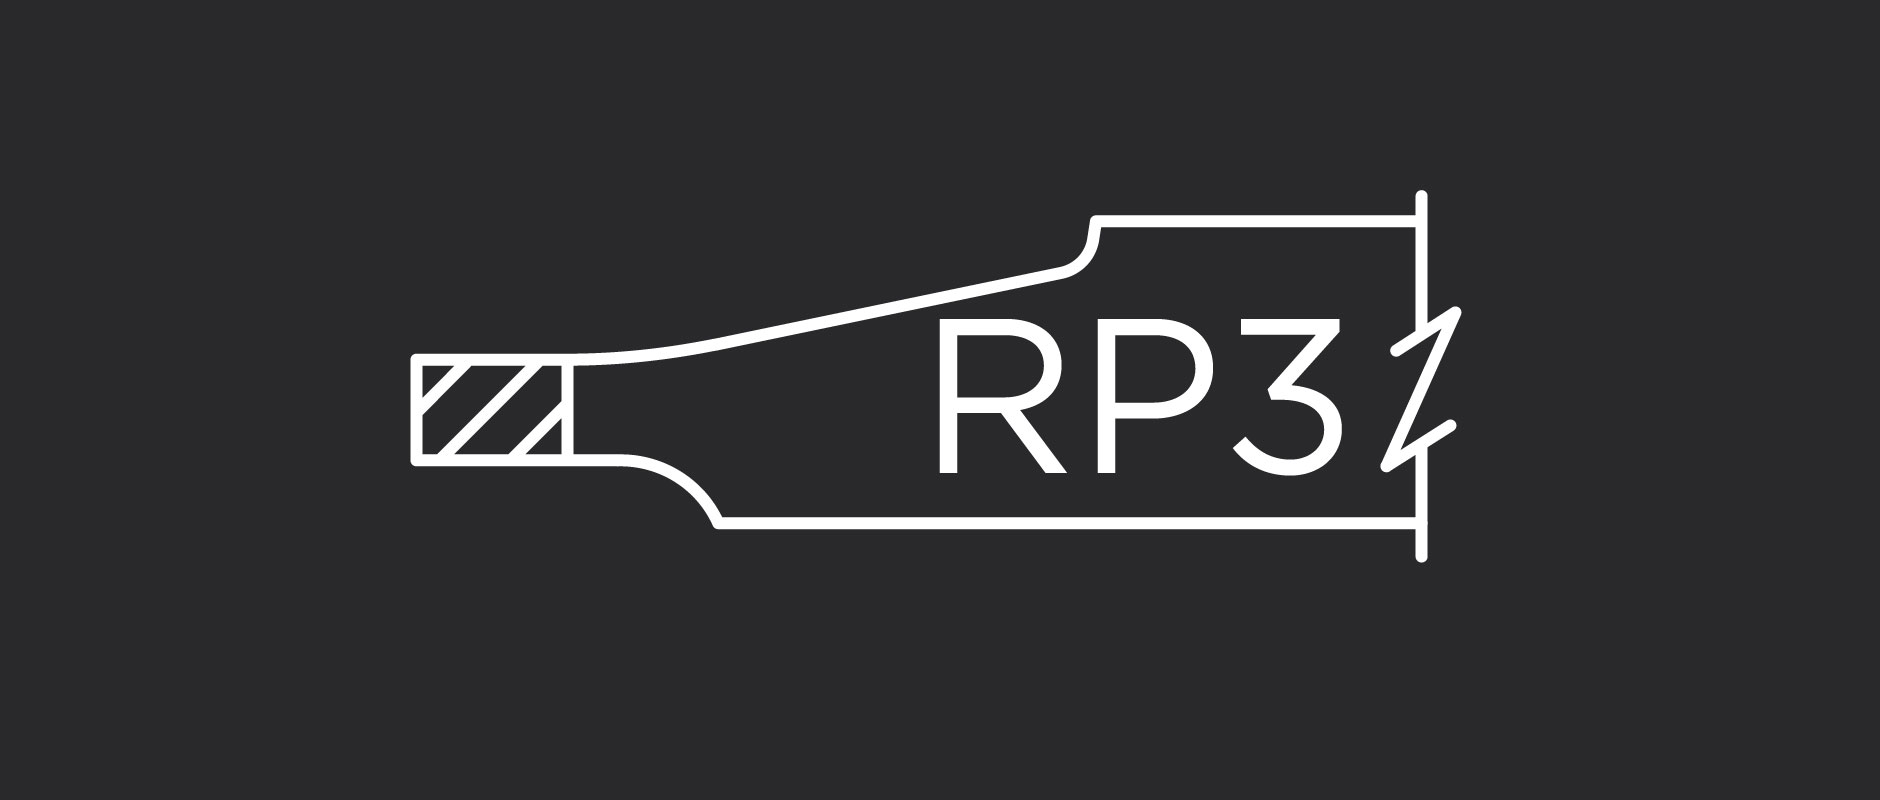 RP3 raised panel profile